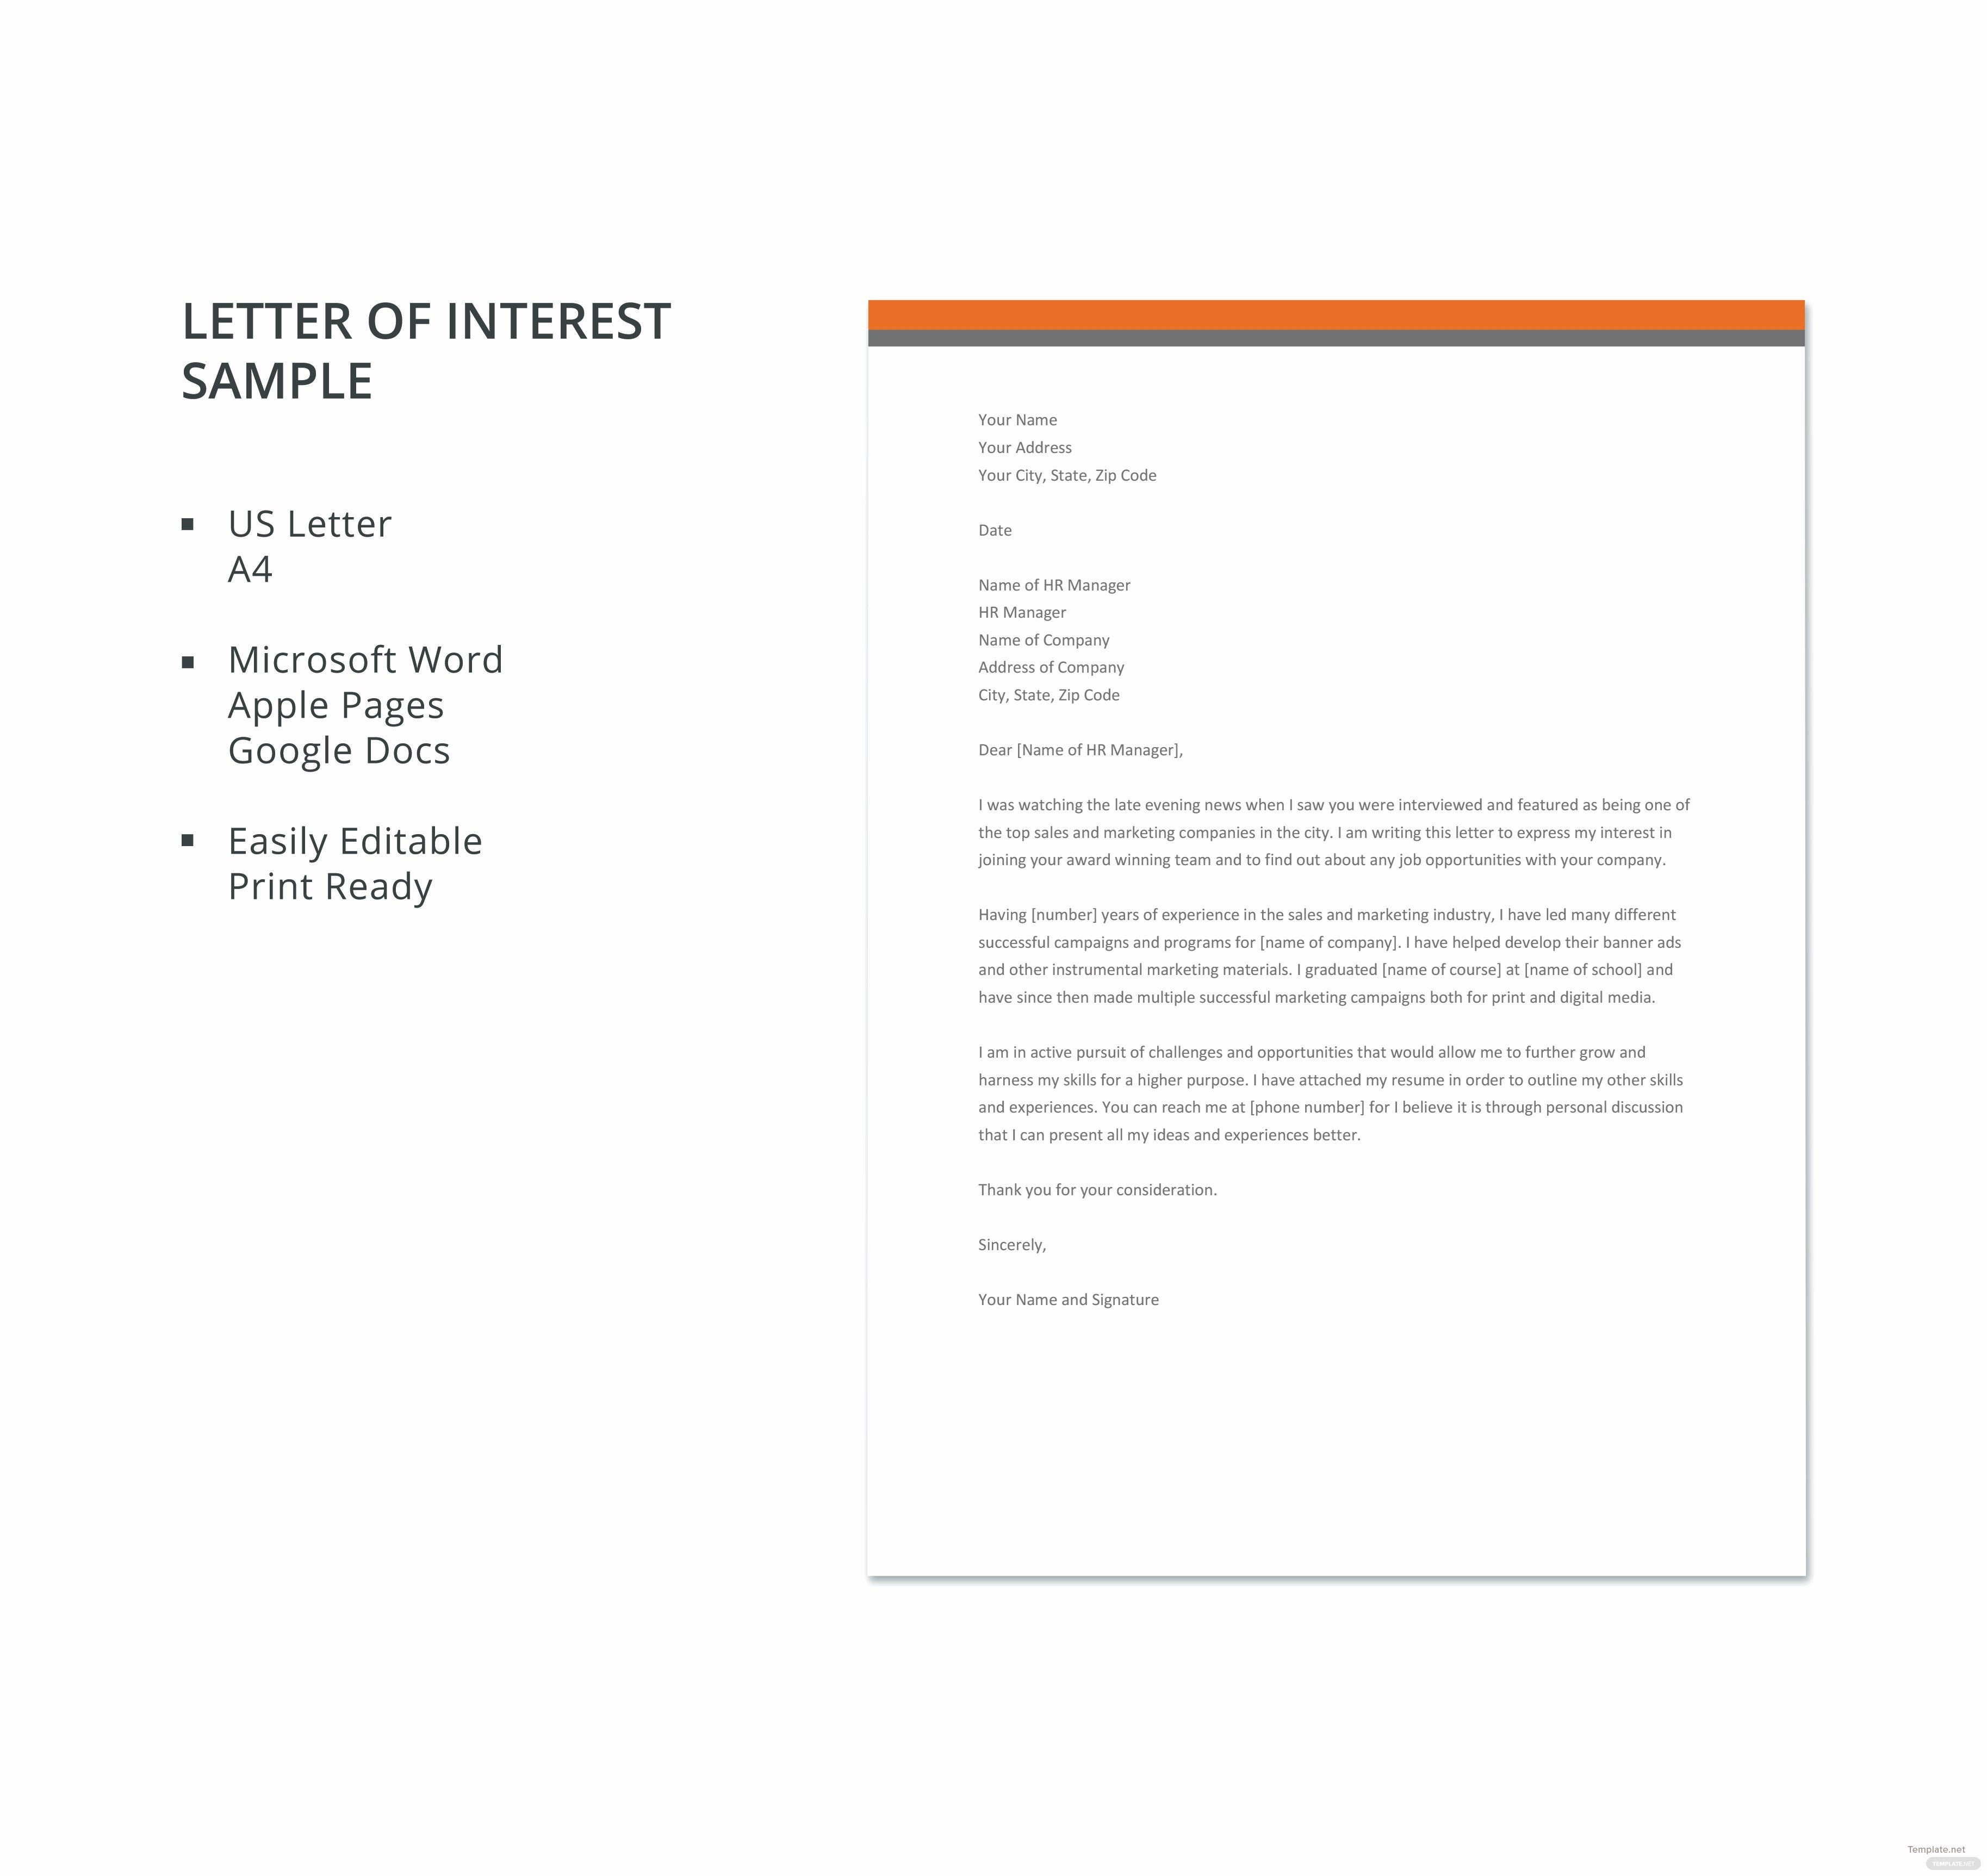 Letter Of Interest Template Word Elegant Letter Of Interest Sample Template In Microsoft Word